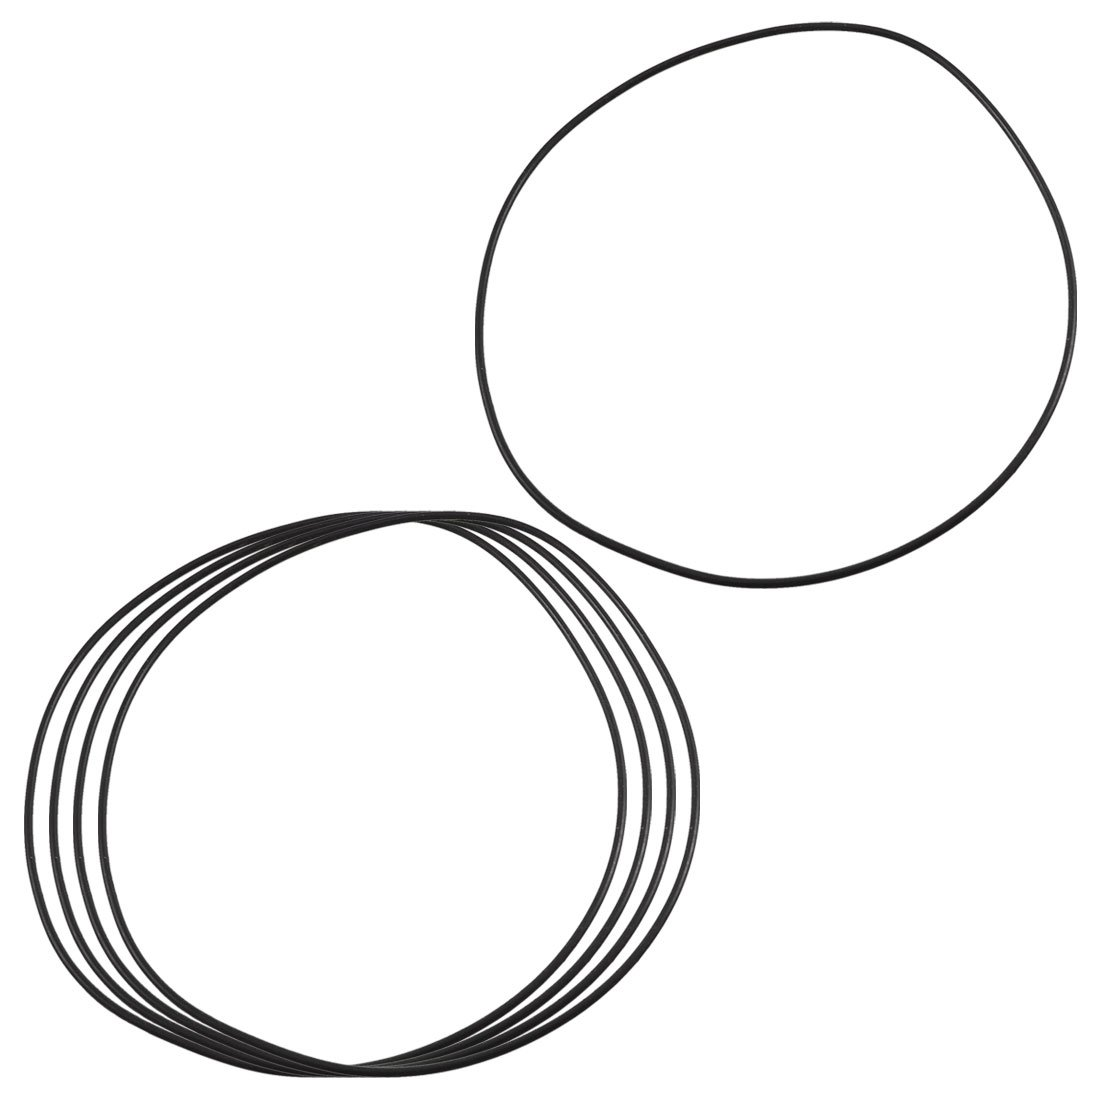 sourcingmap® 5 Pcs Black Rubber Oil Seal O Ring Gasket Washers 100mm x 97mm x 1.5mm a12100800ux1089